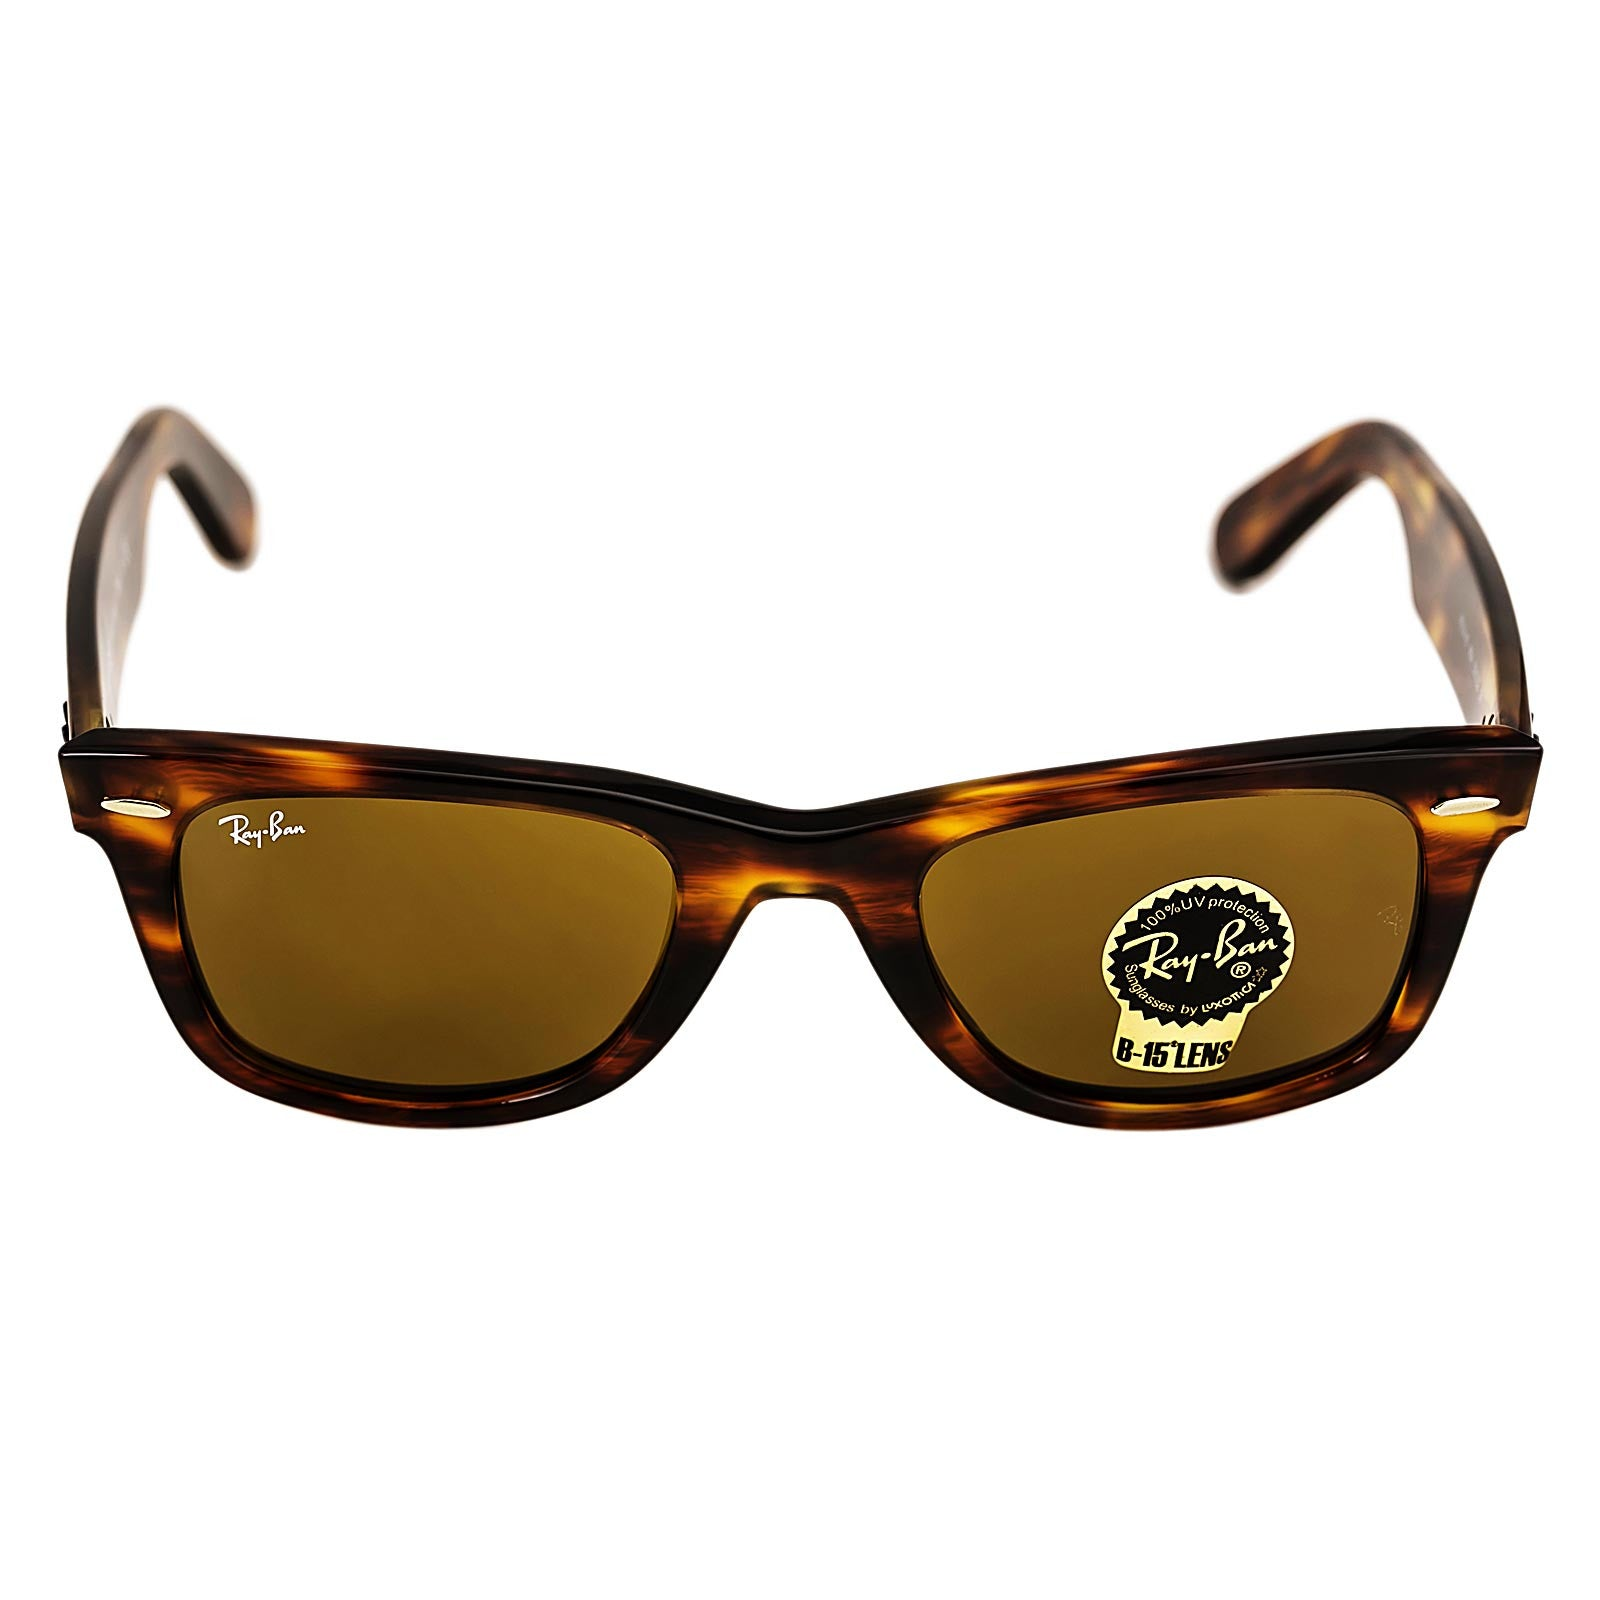 ray ban polarized original wayfarer  ray ban rb 2140 954 50 women's original wayfarer classic tortoise acetate frame brown classic b 15 lenses sunglass